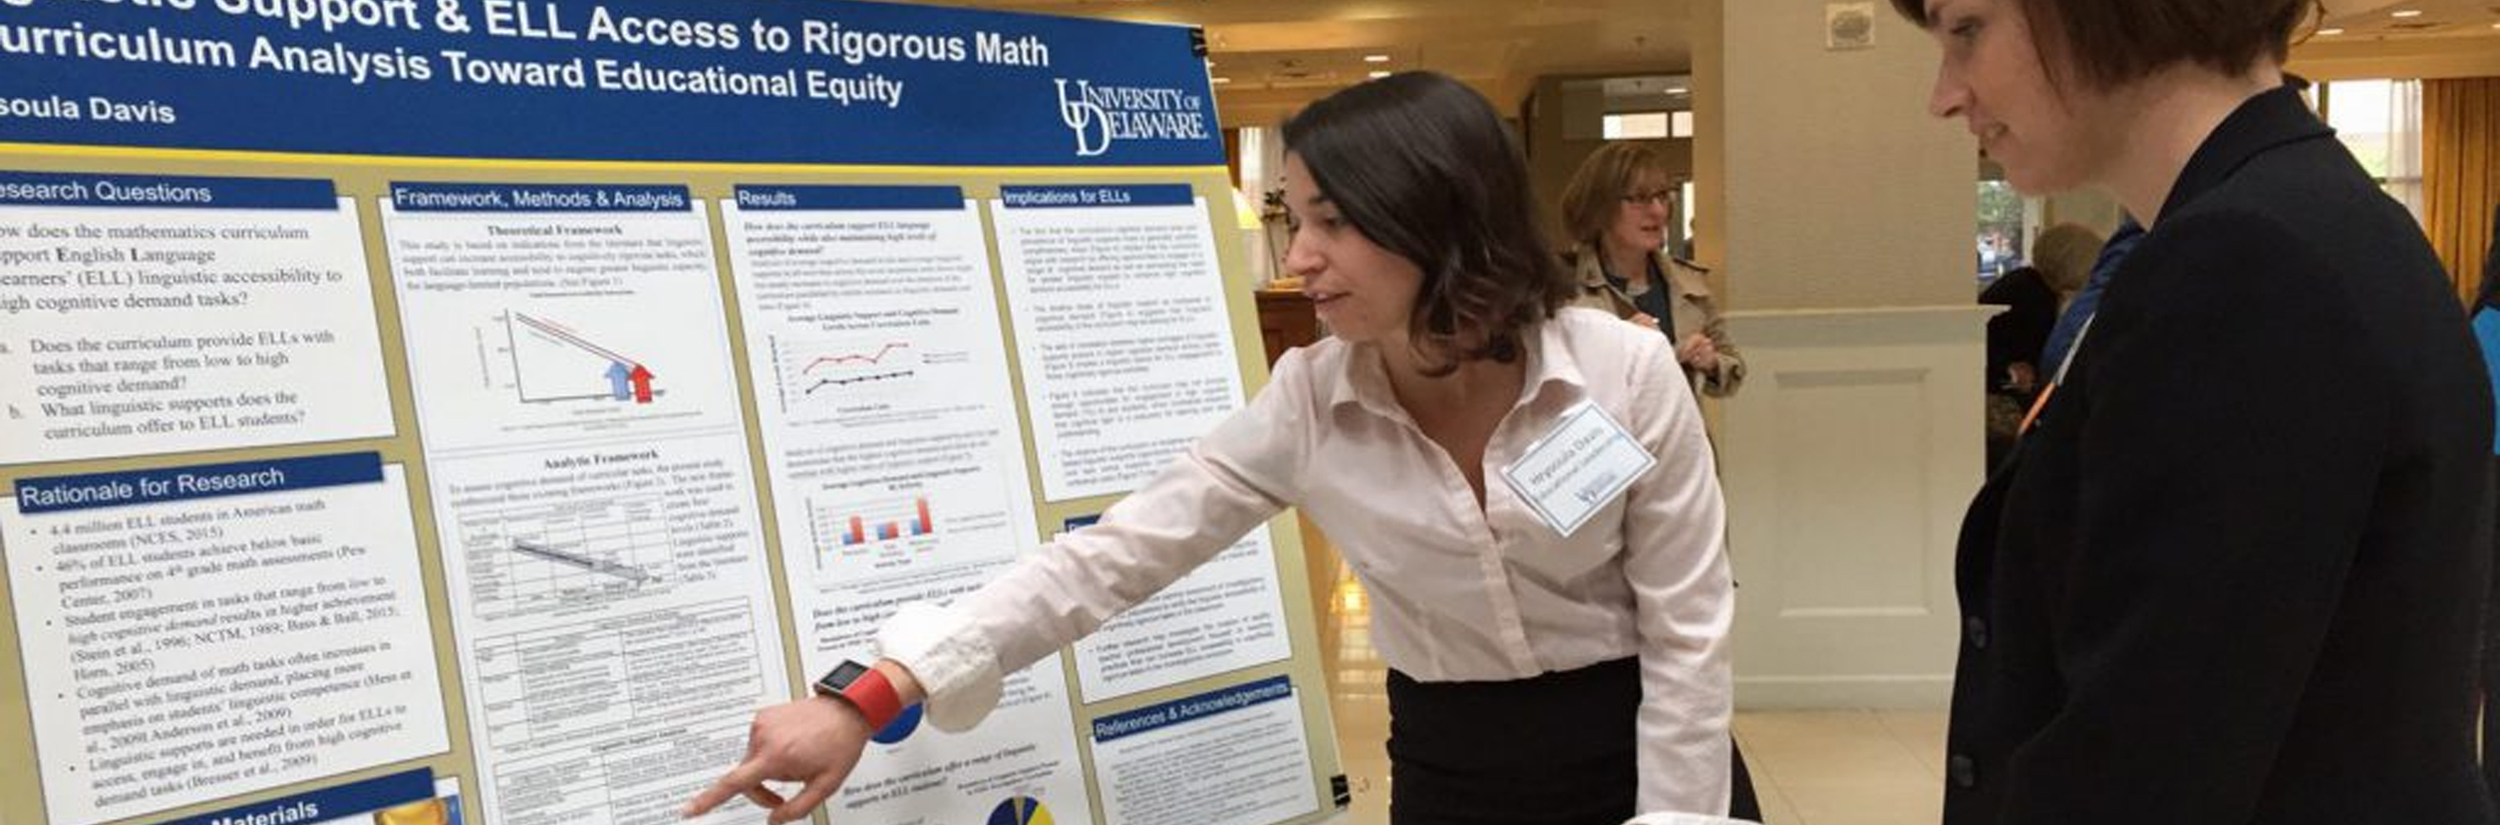 Doctoral student shows her research poster to a woman